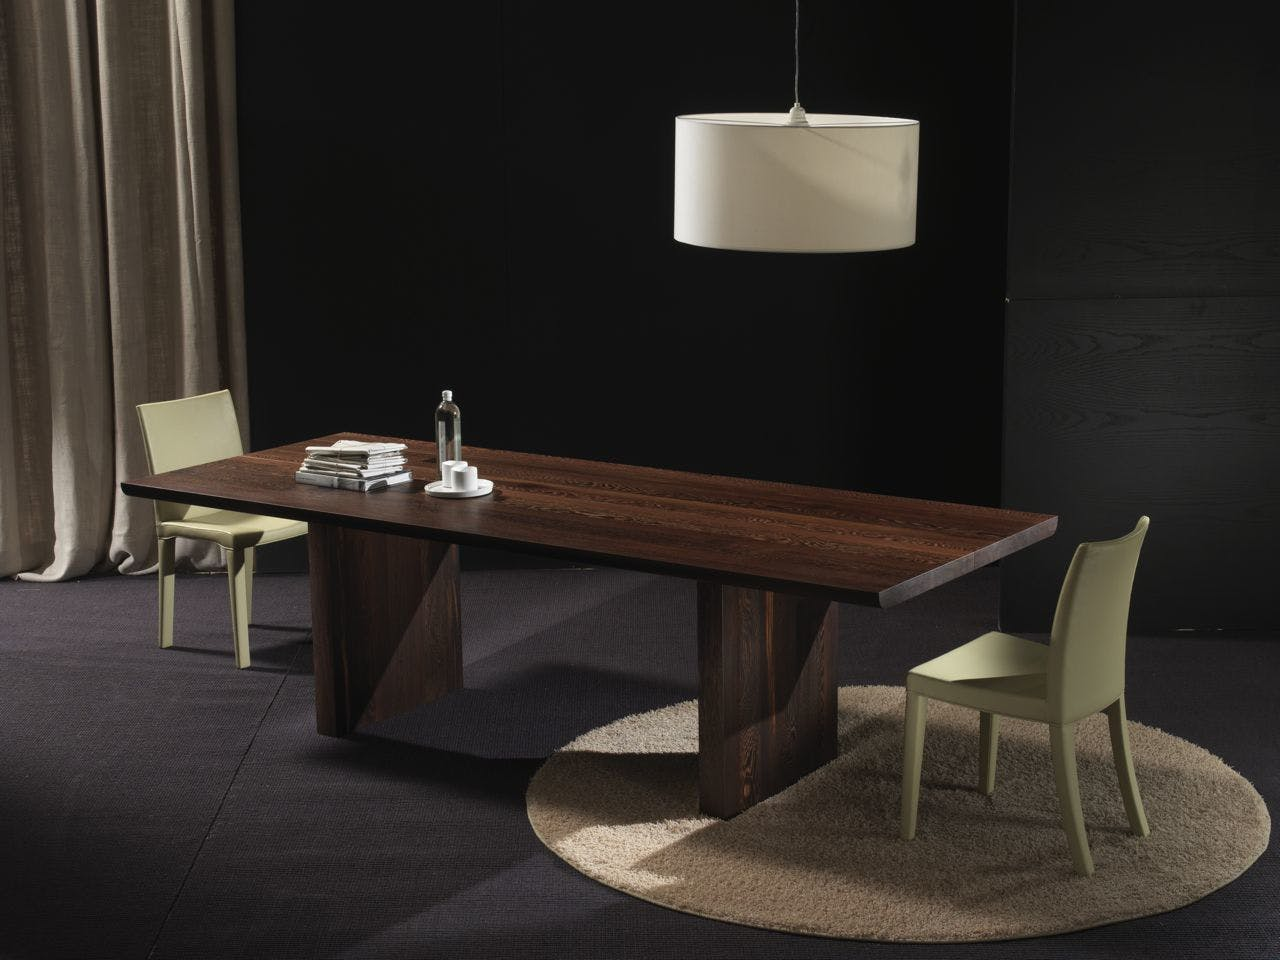 Celerina Table3 Ambient